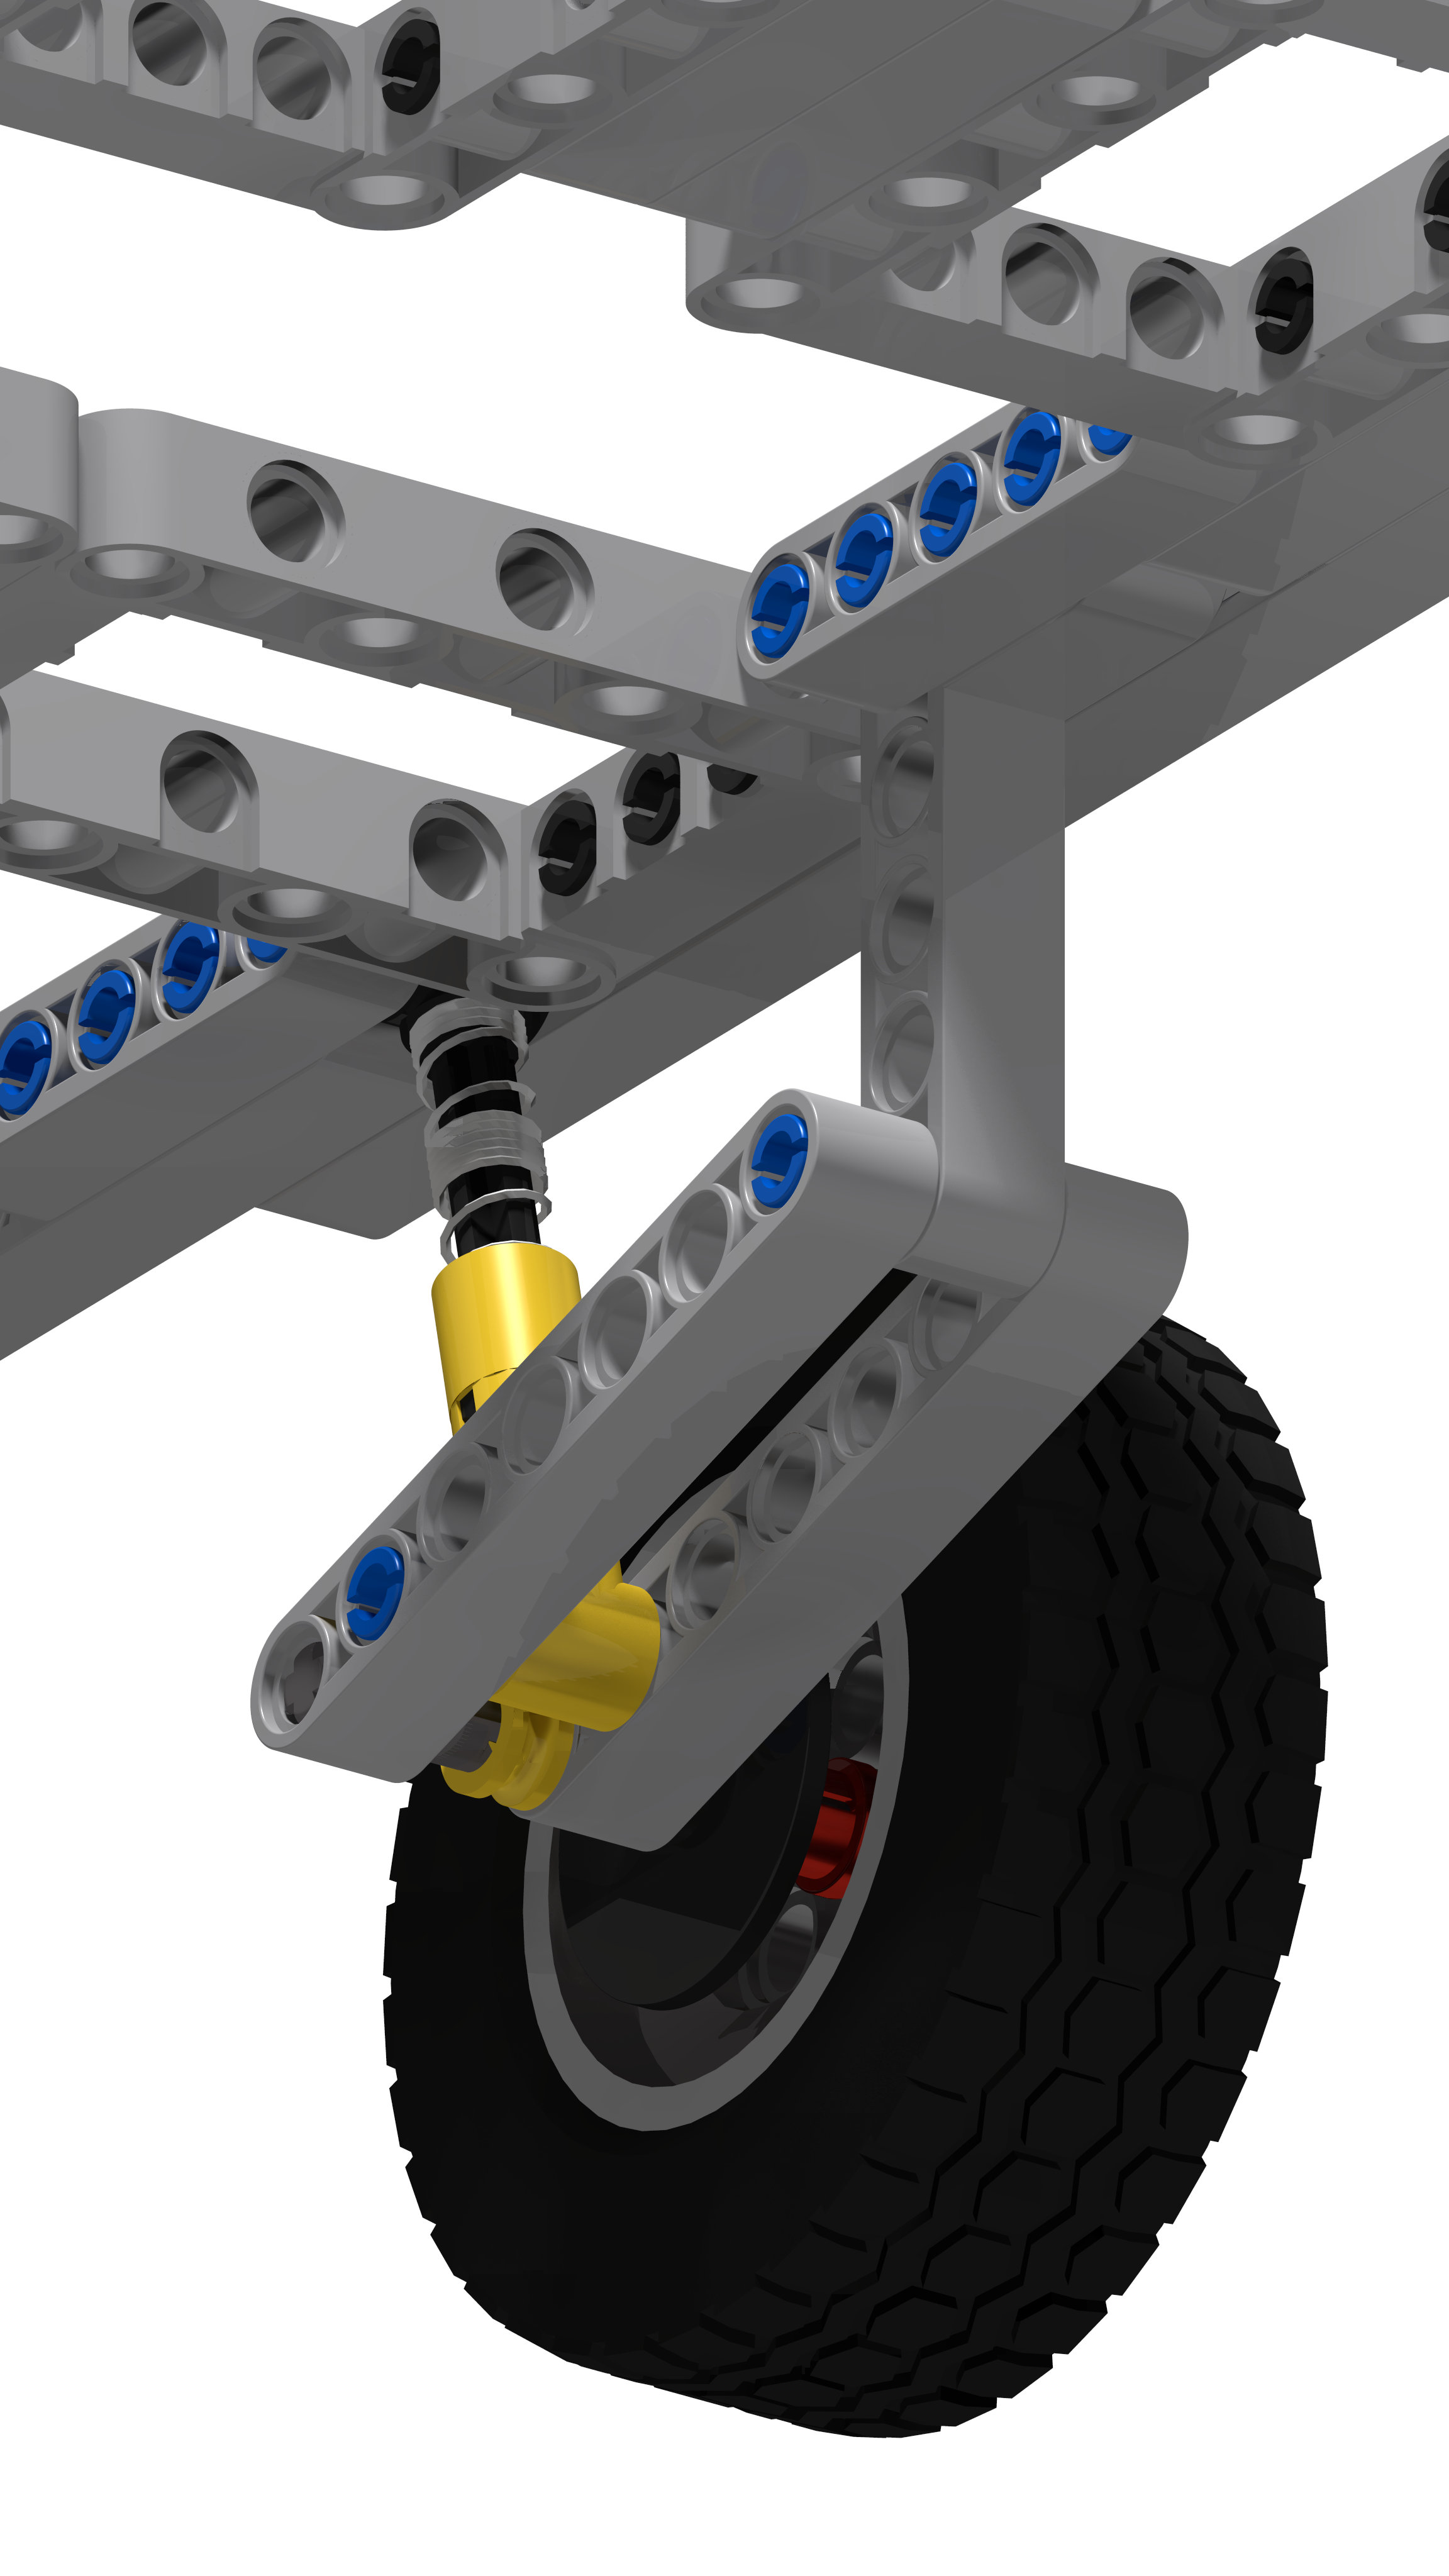 trailer_chassis_suspension.jpg